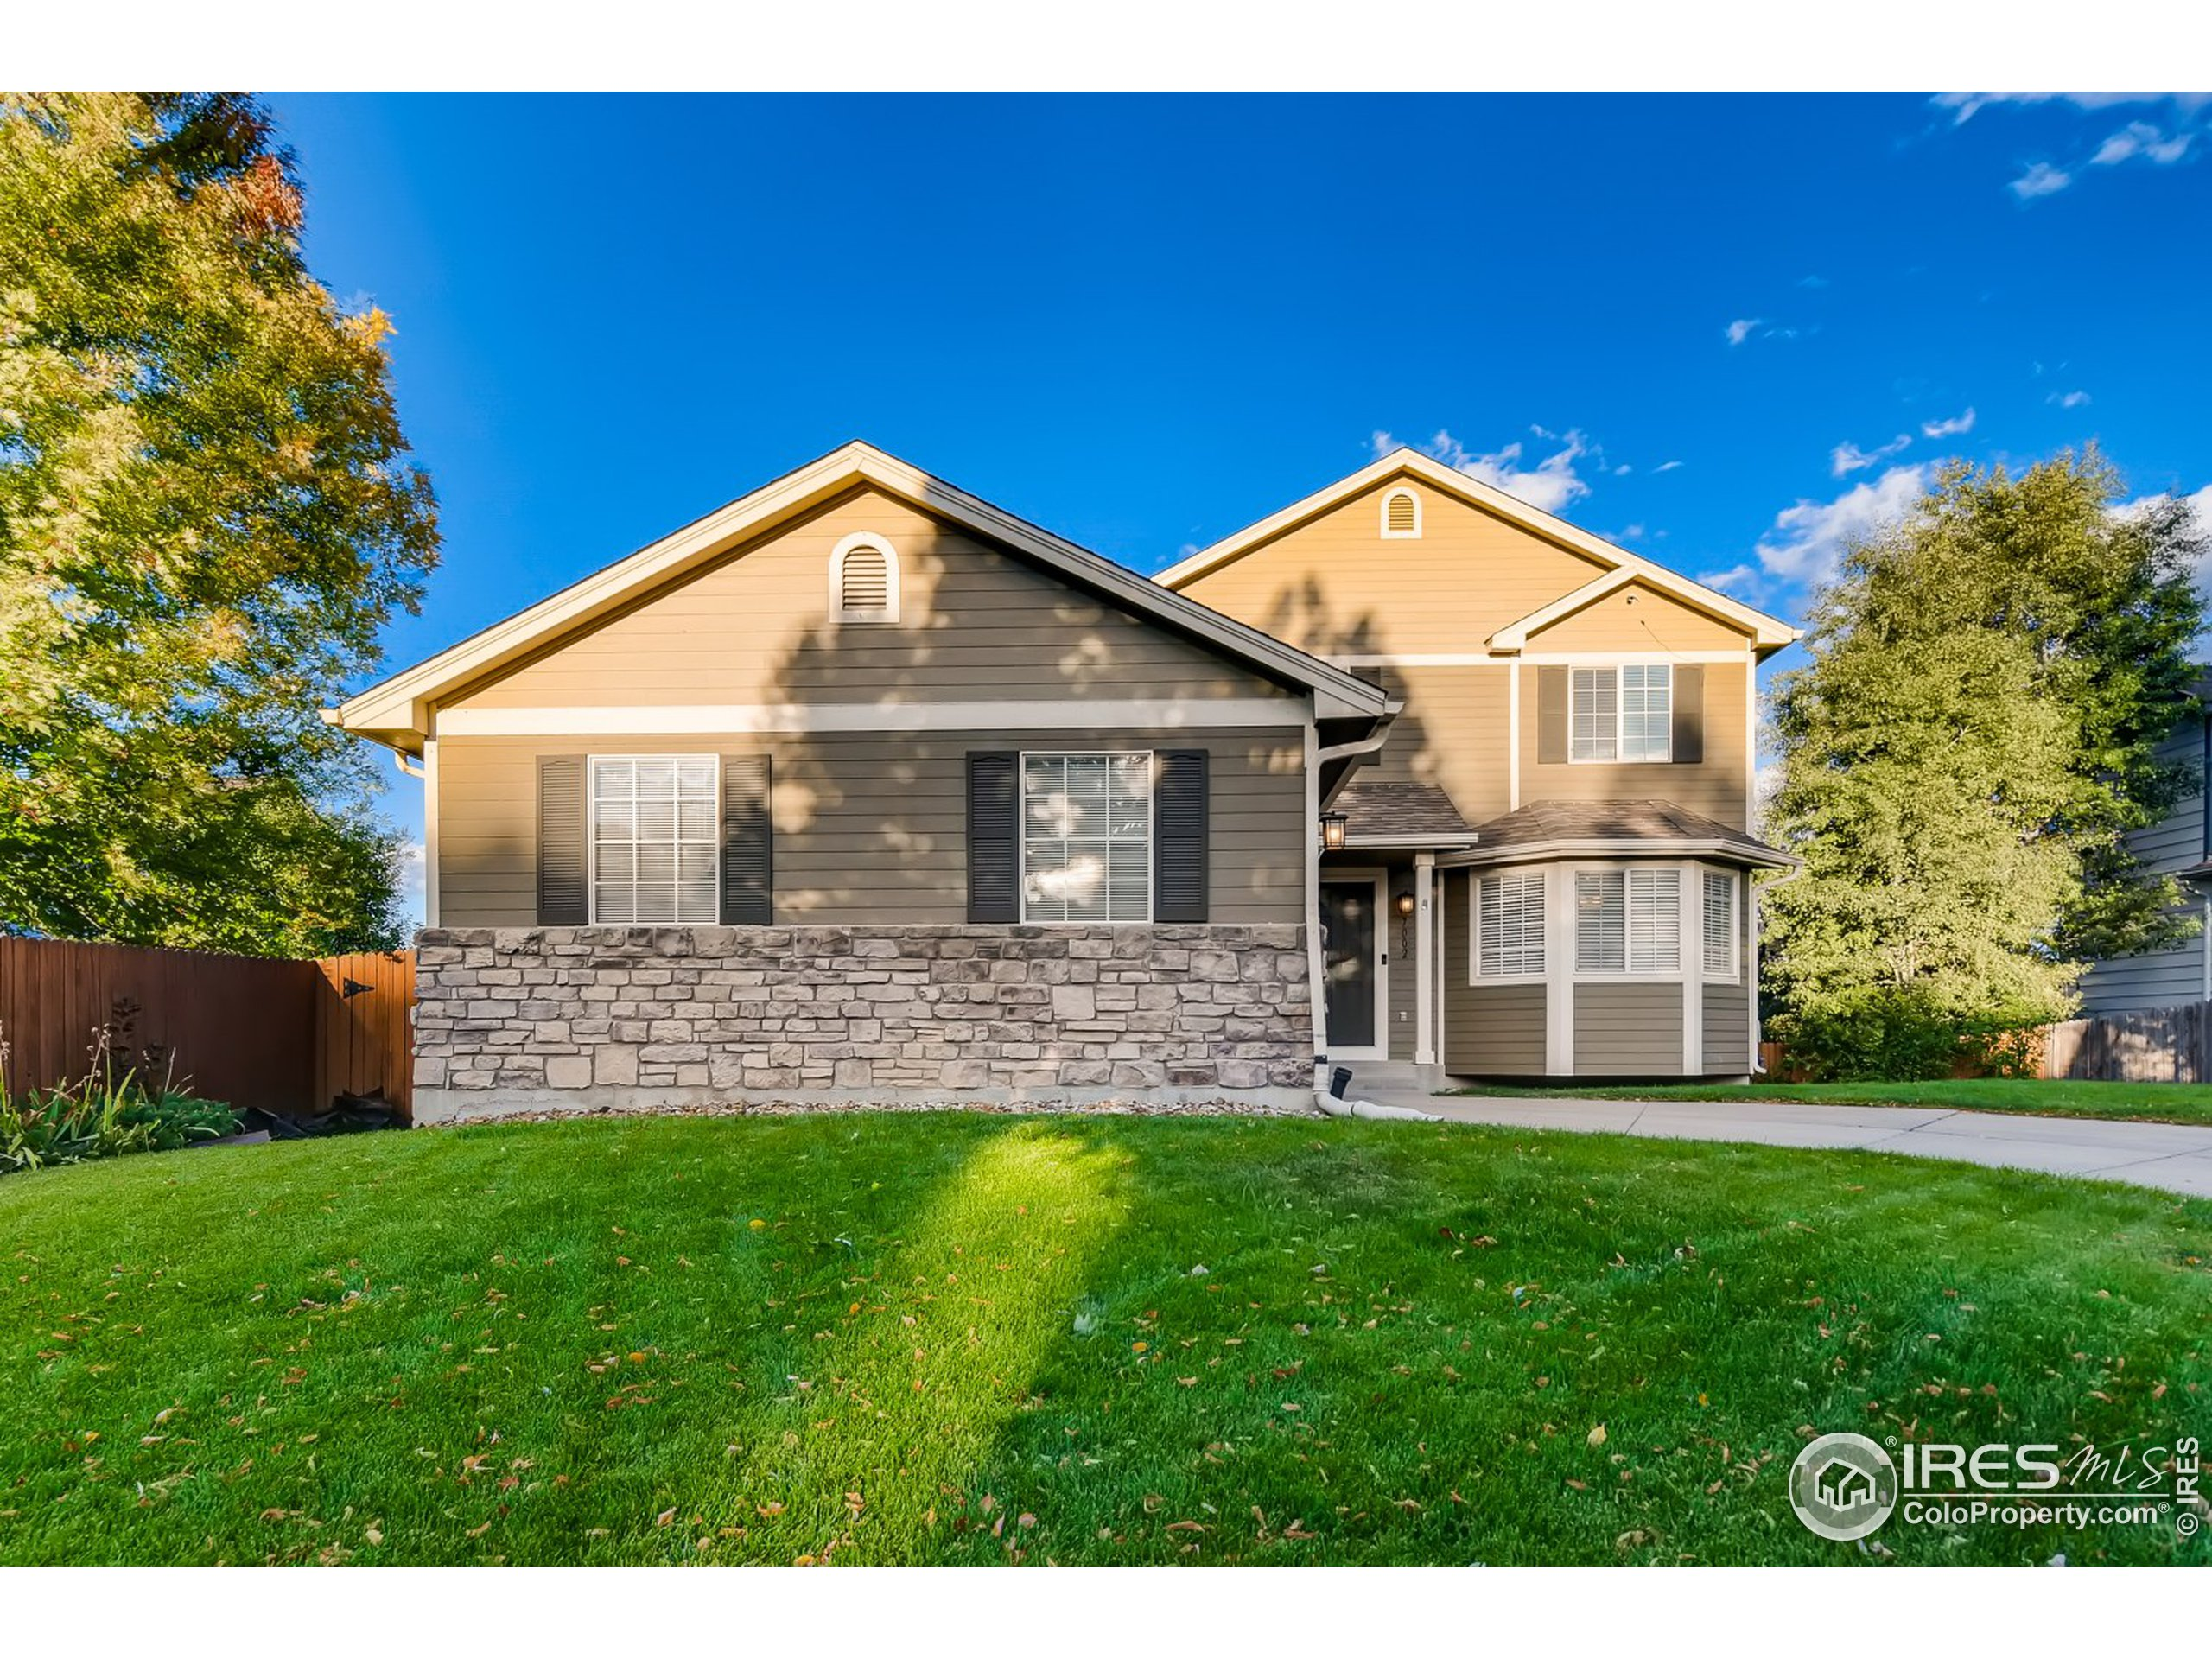 7002 Avondale Rd, Fort Collins, CO 80525